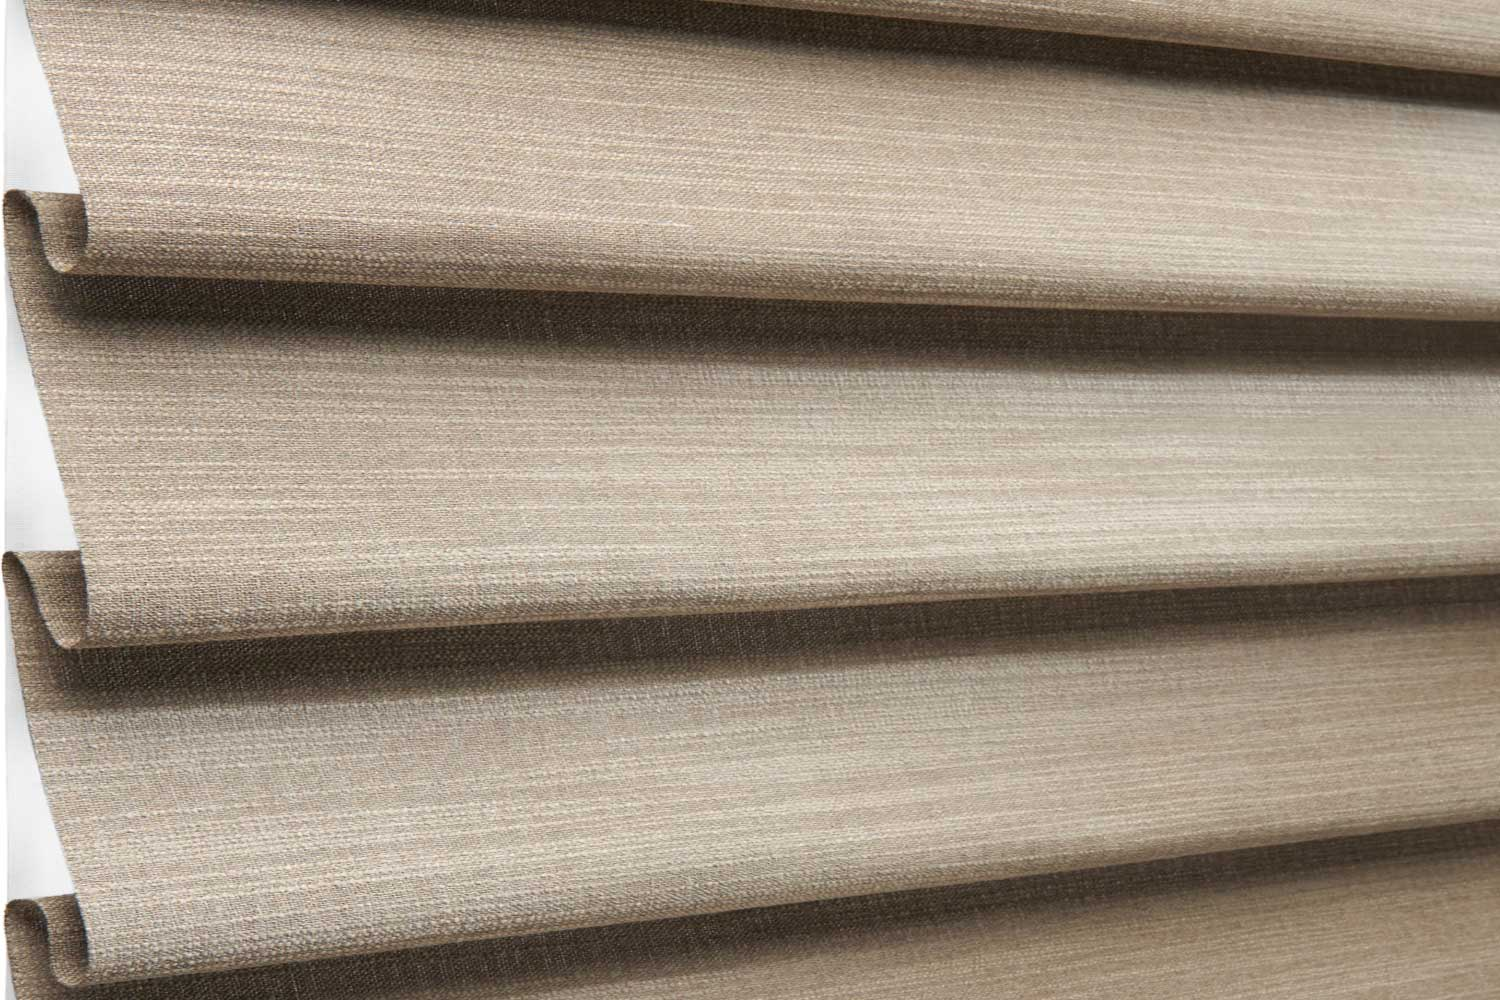 THE PERFECT ROMAN SHADE - Imagine a Roman shade that has uniform, contoured or flat-fabric folds, and no exposed rear cords. We've eliminated all the issues from the standard Roman, and created a flawless modern shade.